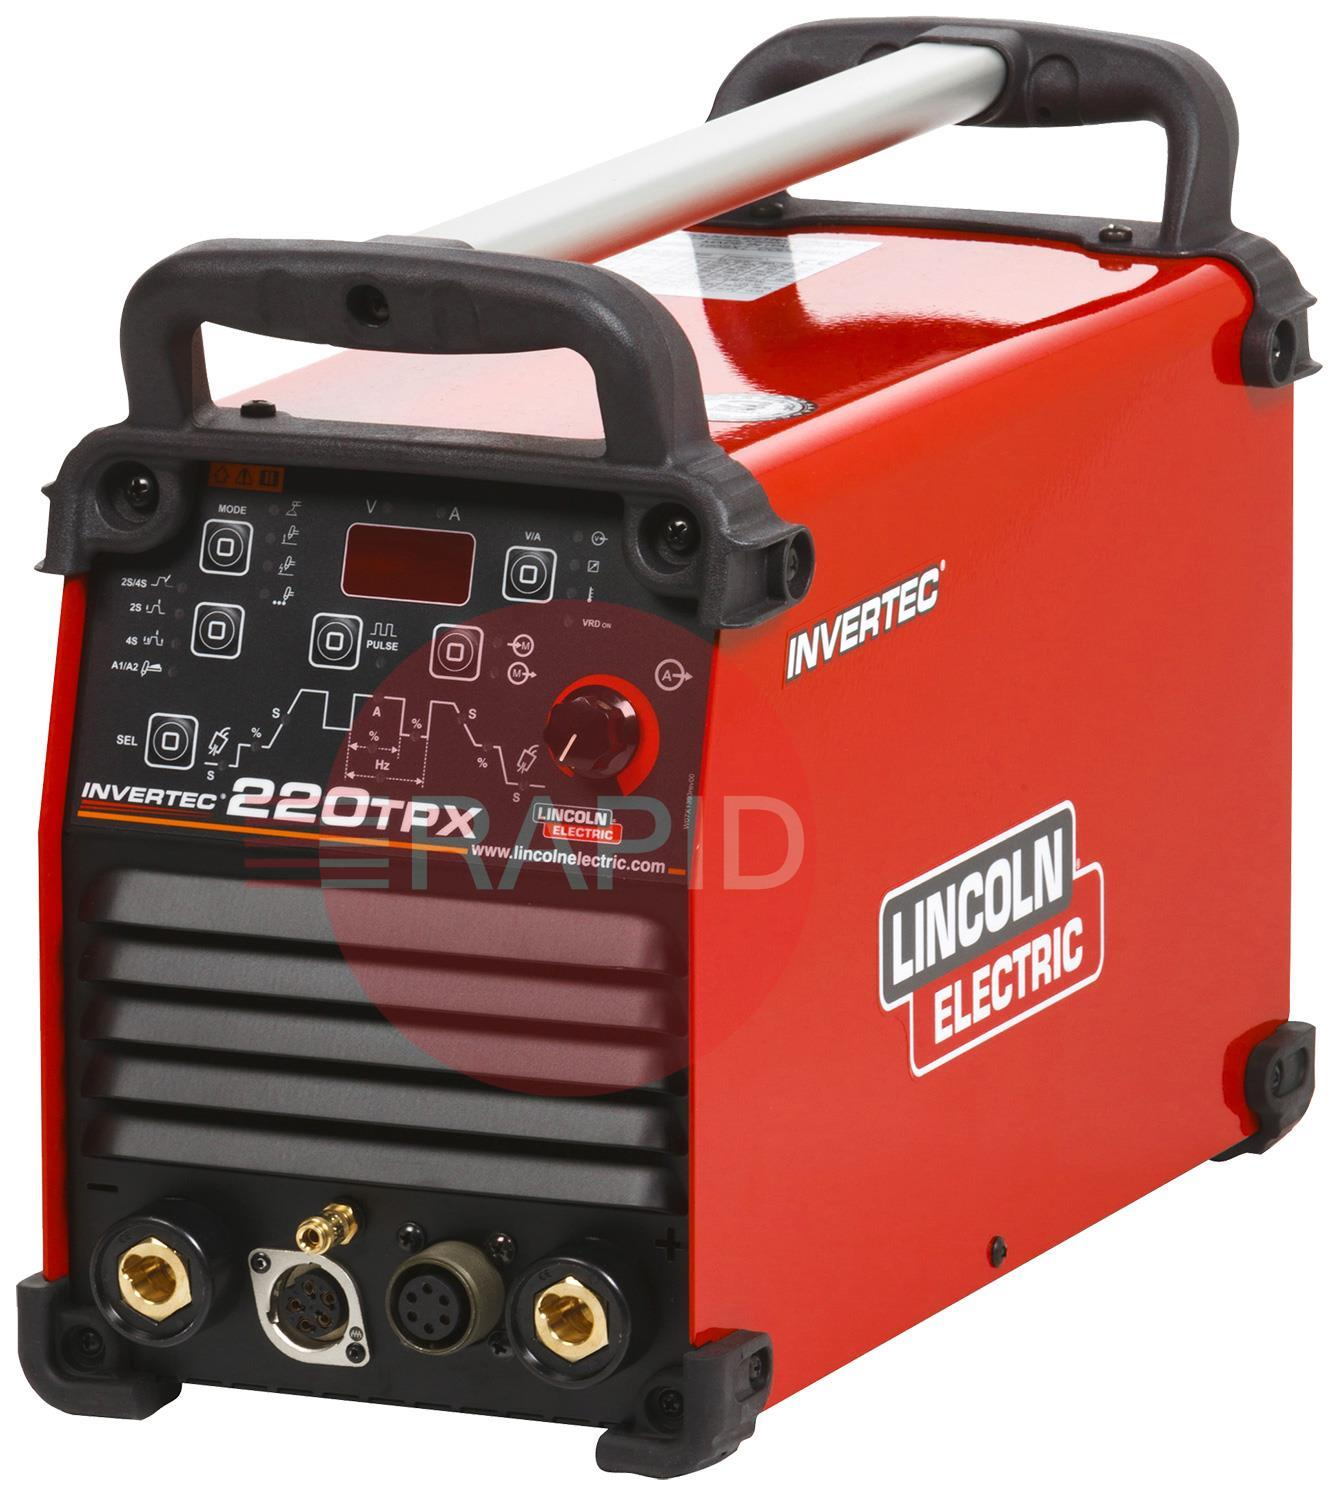 K12057-1  Lincoln Invertec 220 TPX Pulse Tig Inverter Power Source, 110/230v CE